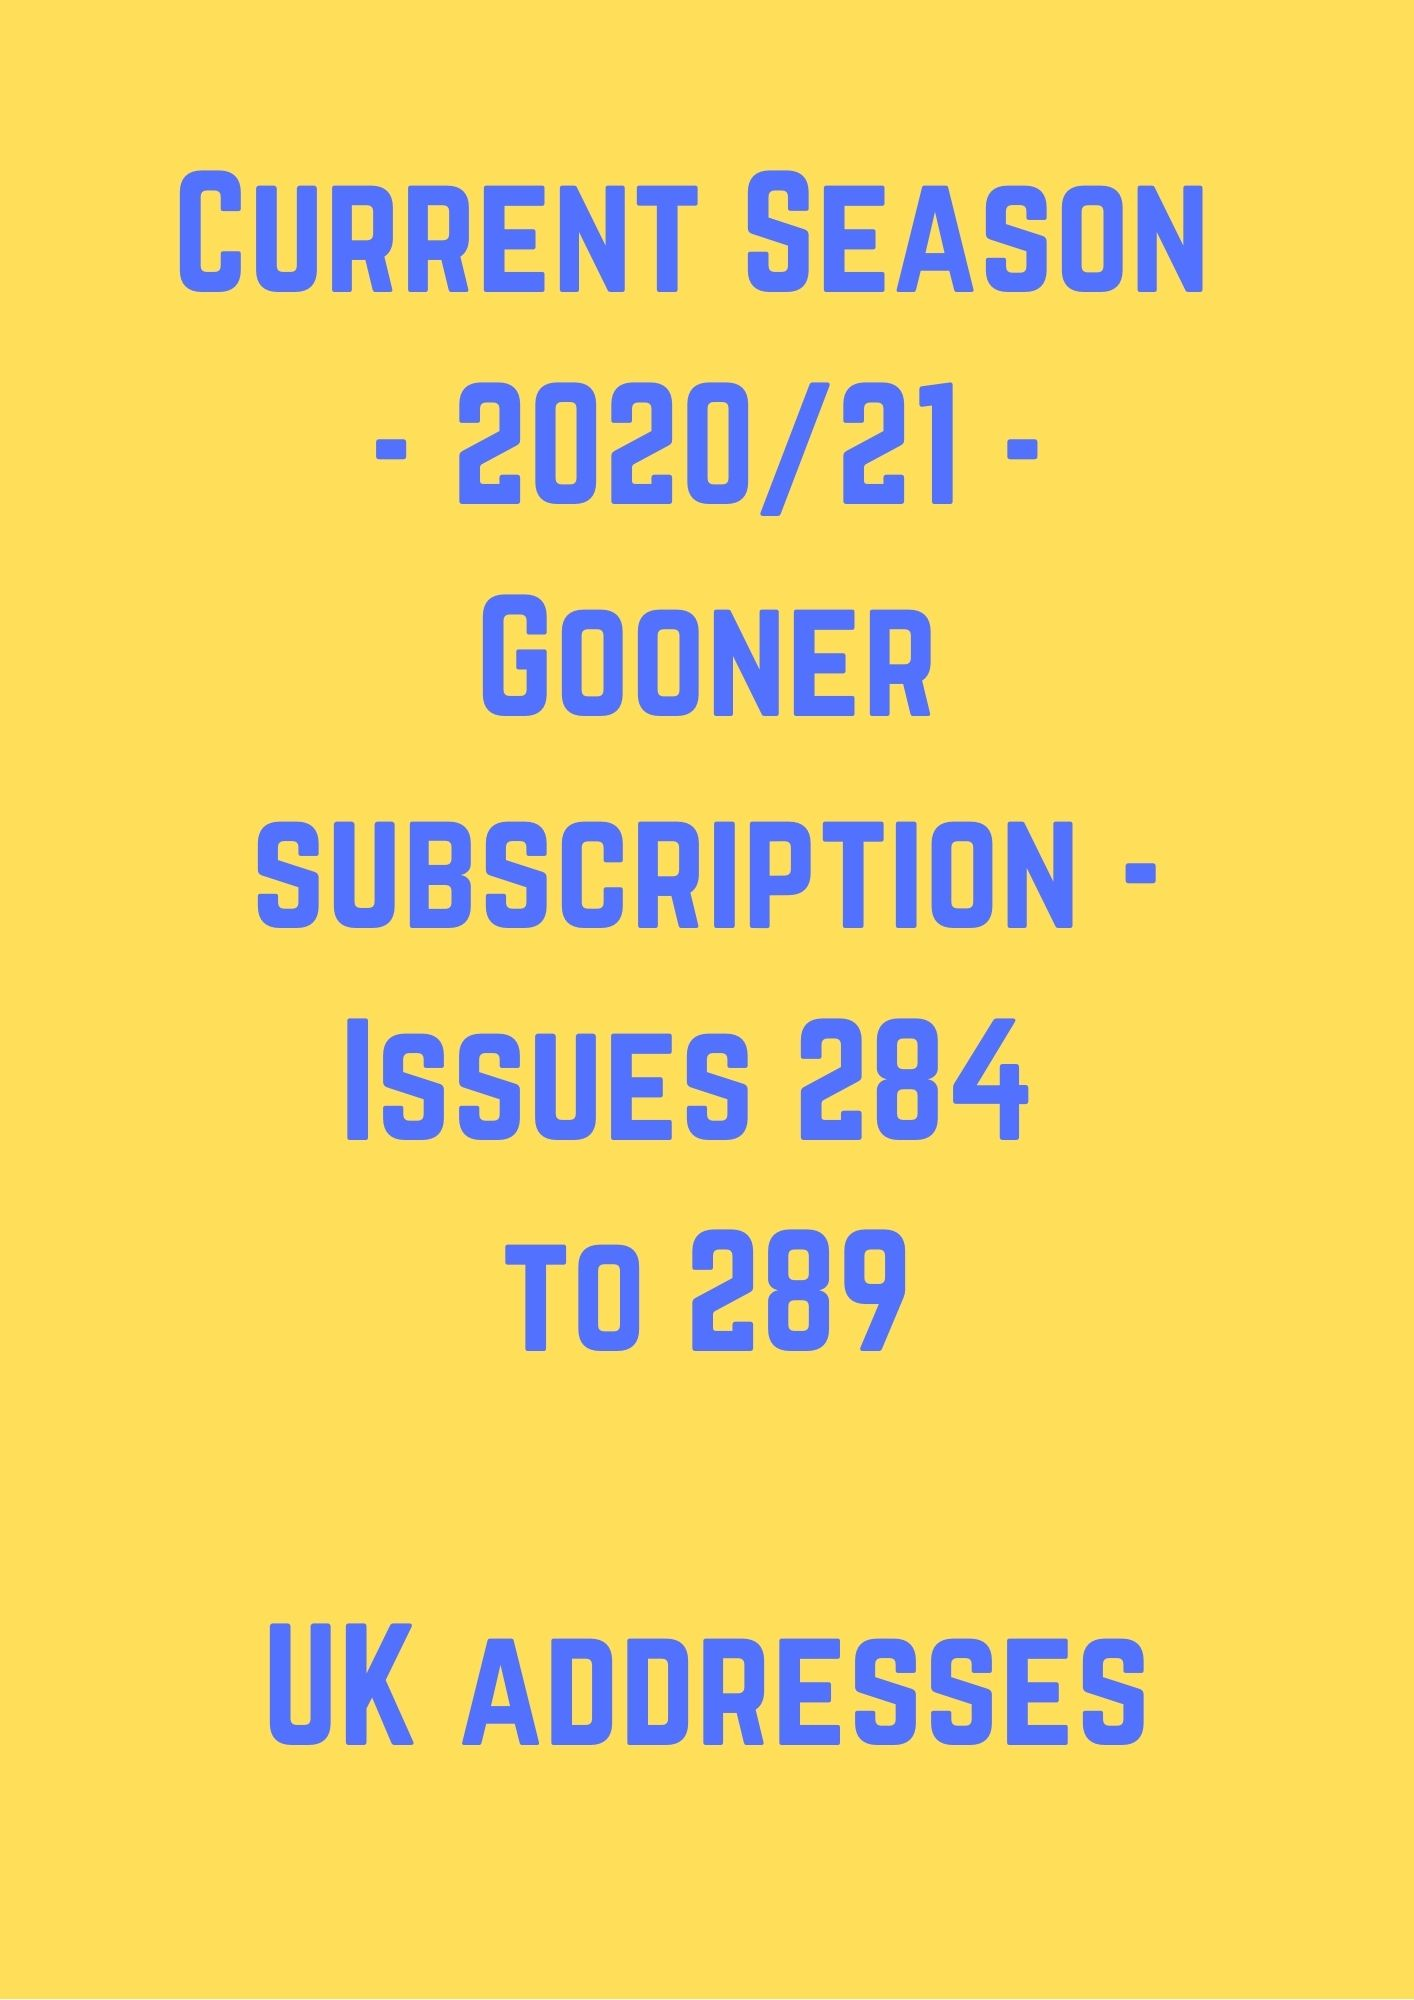 Current Season (2020/21) UK Subscription